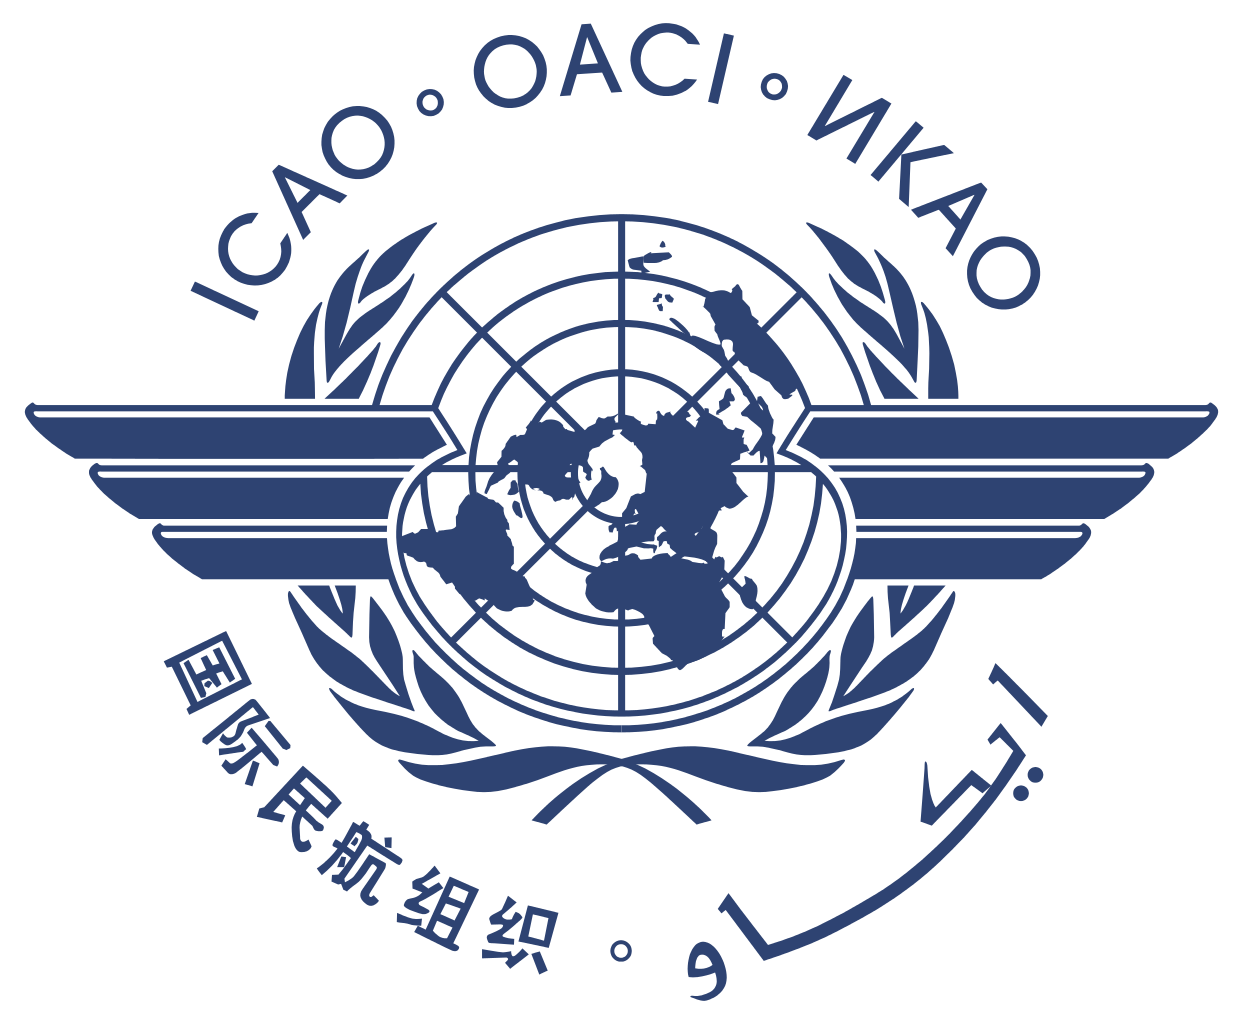 International Civil Aviation Organization (ICAO), is a specialized agency of the United Nations